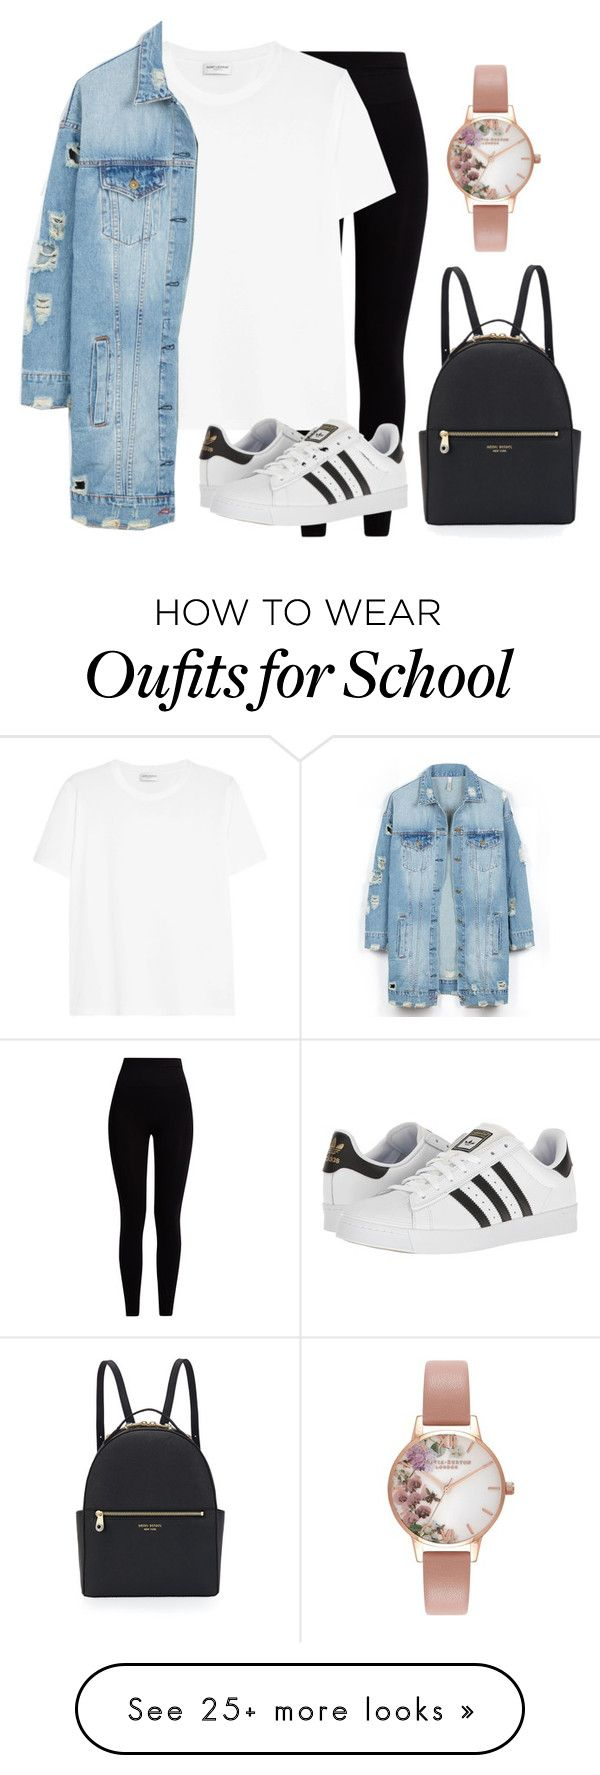 """Back to school"" by maryamlovesbeauty on Polyvore featuring Pepper & Mayne, Yves Saint Laurent, LE3NO, Henri Bendel, adidas and Olivia Burton"